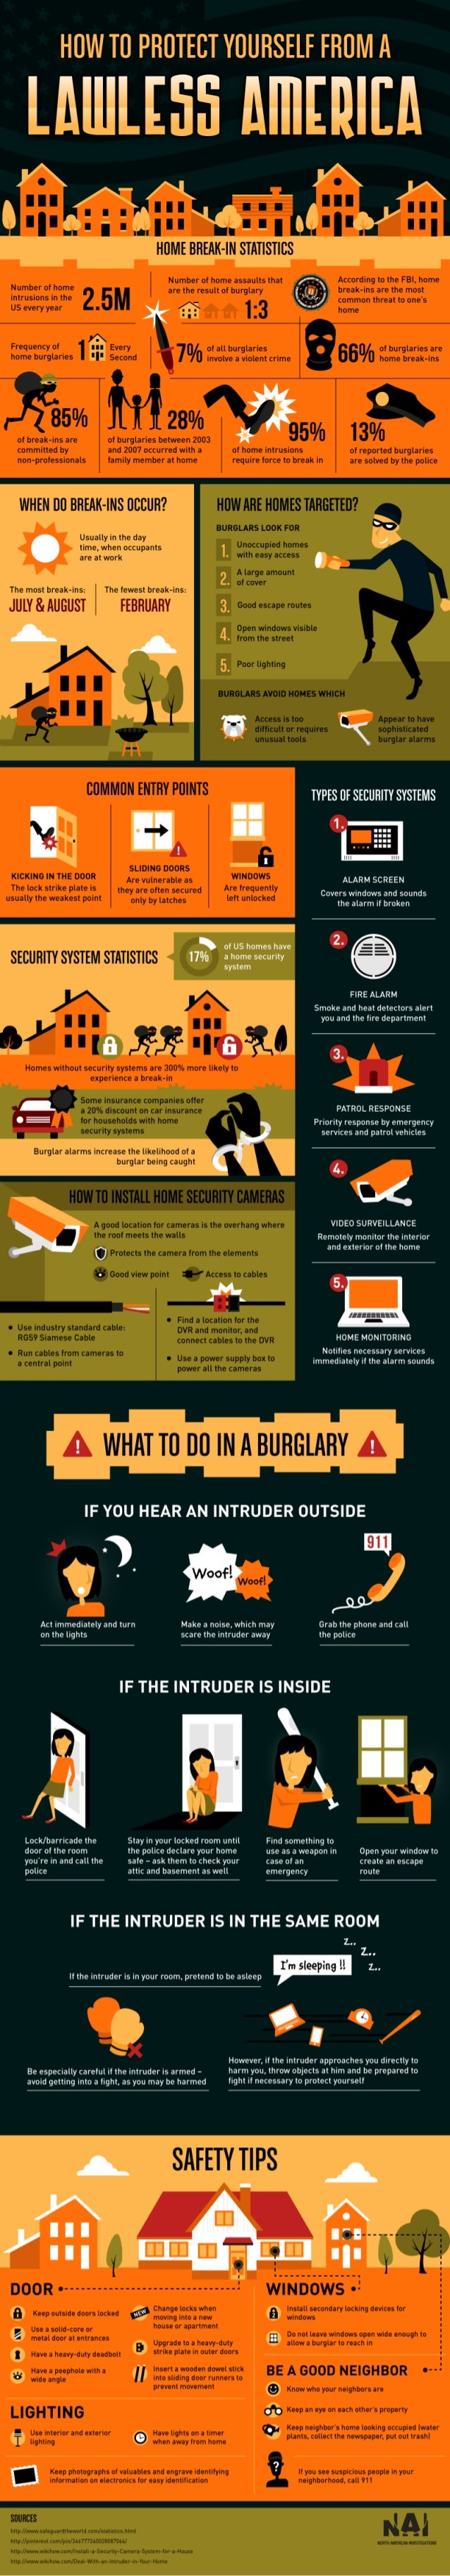 How To Prevent a Home Invasion